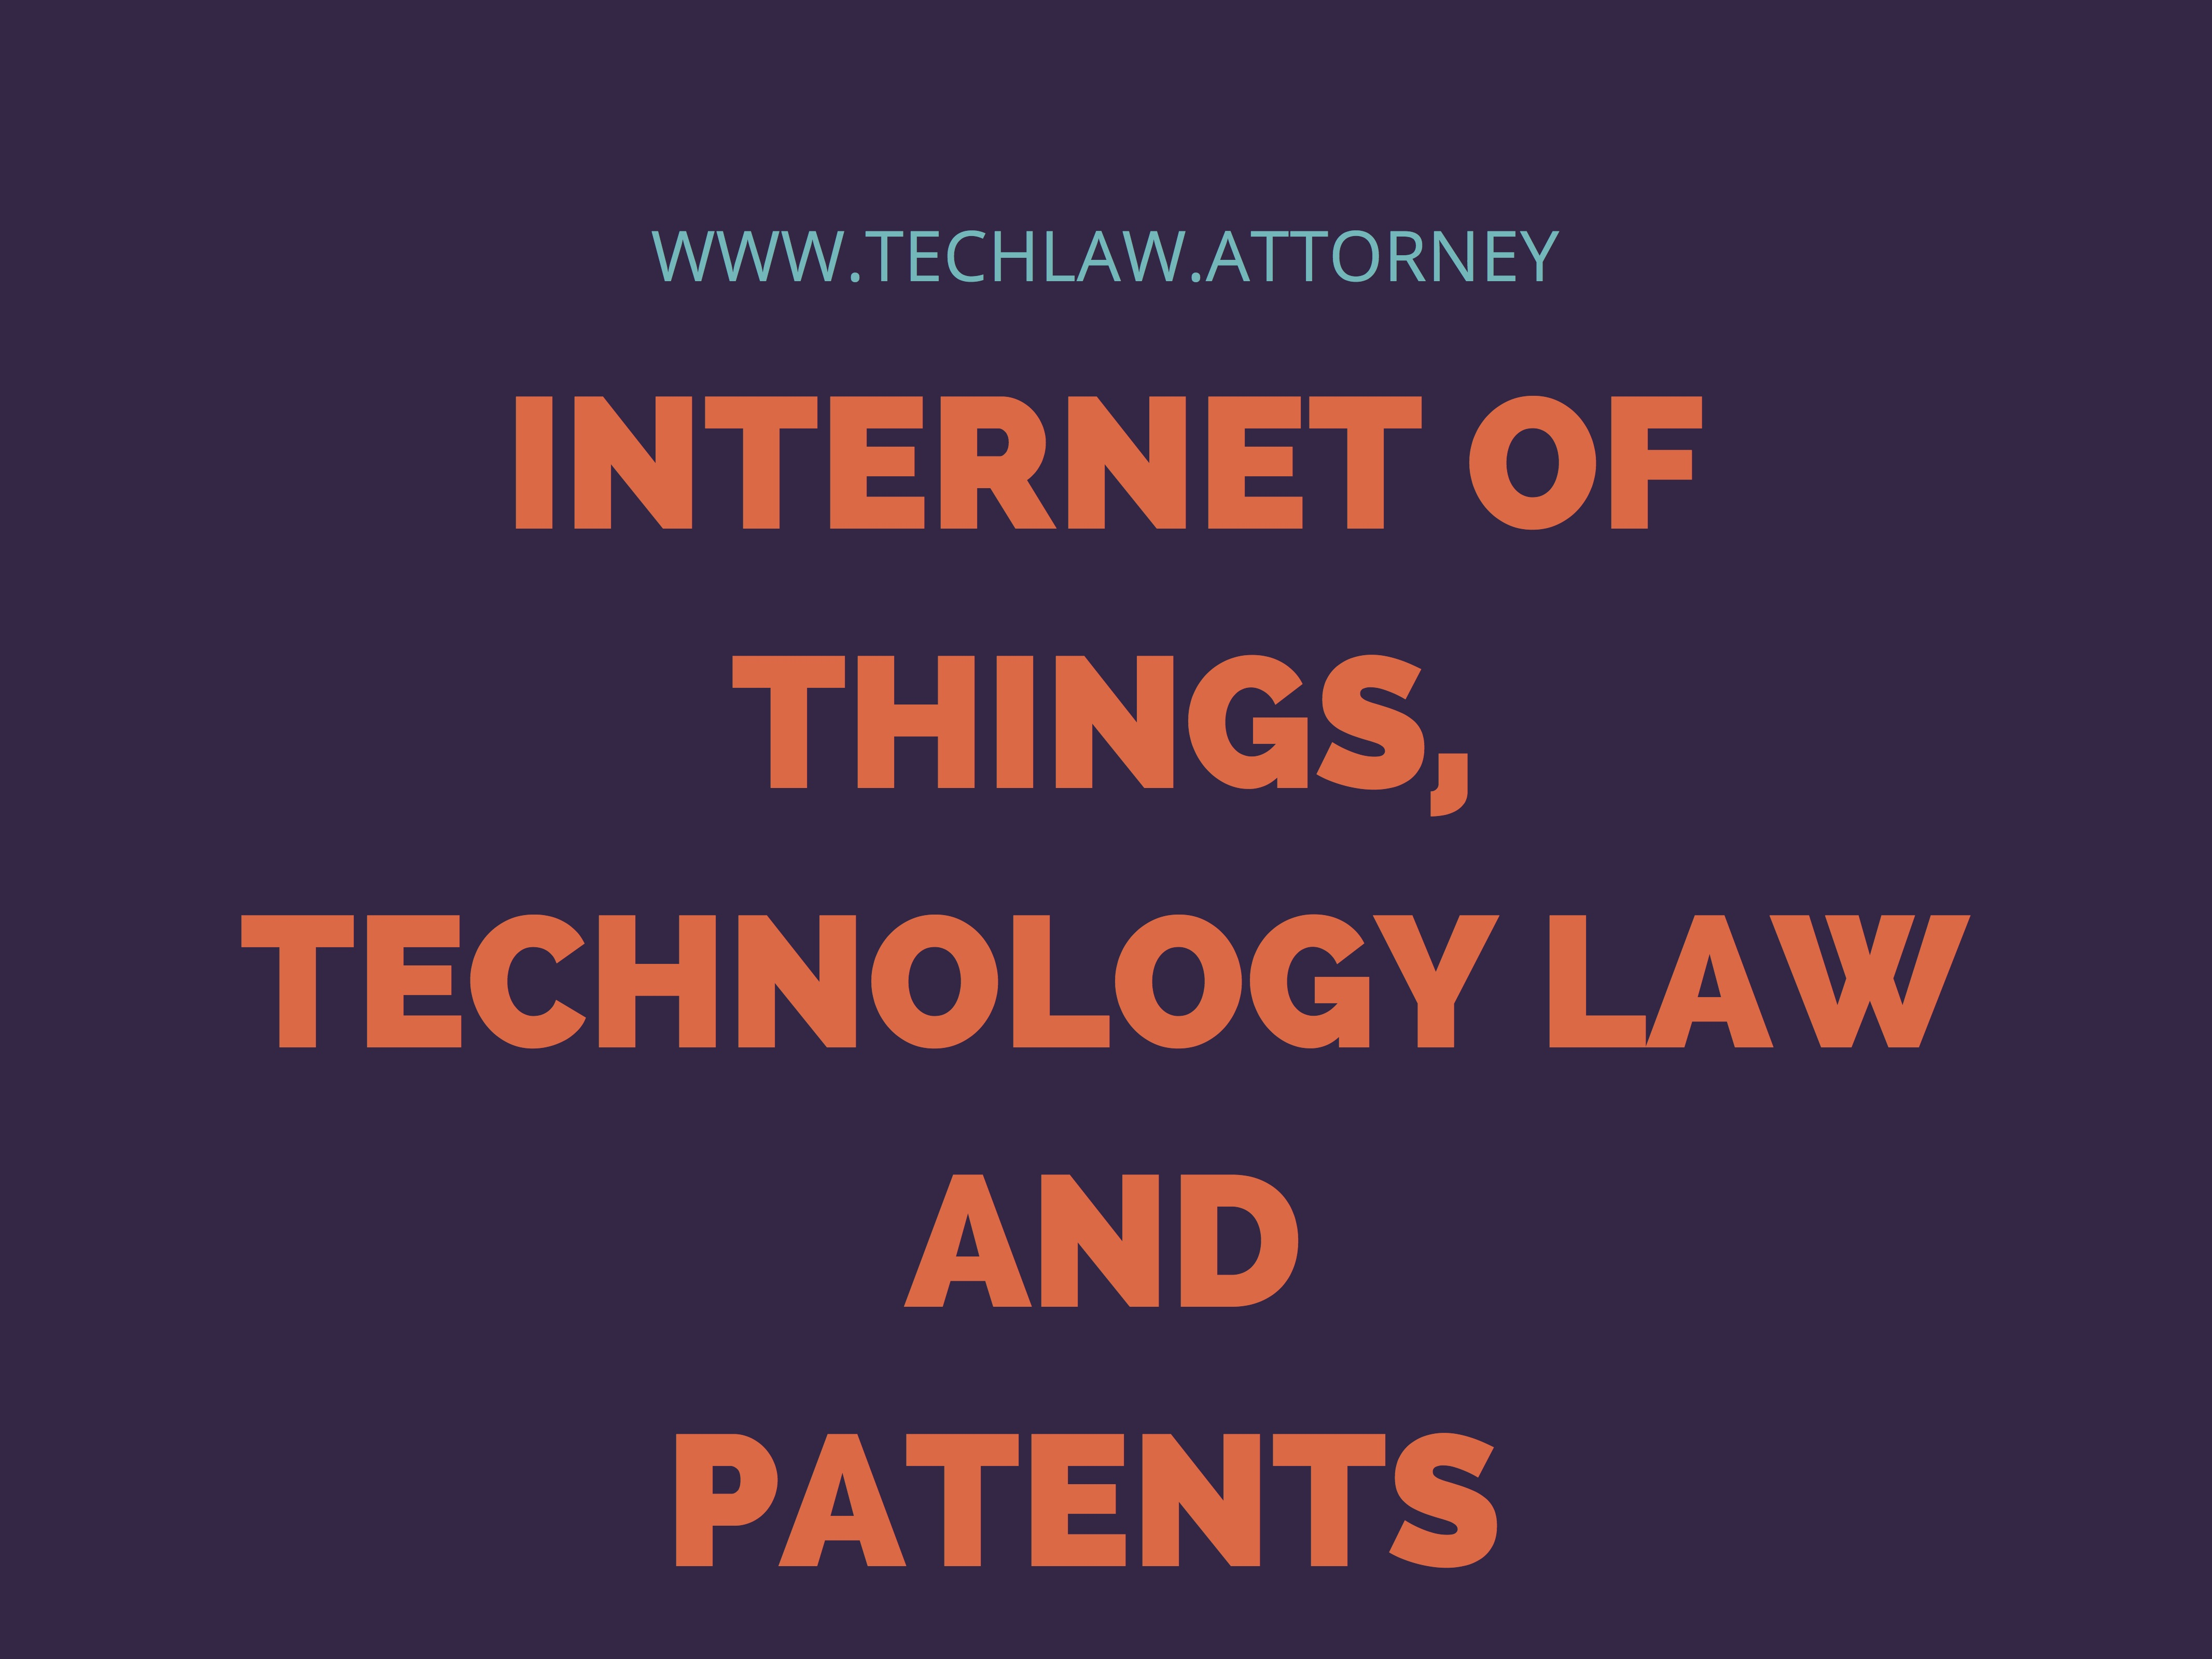 internet of things patent, internet of things inventions, internet of things patents, internet of things bluetooth, internet of things patent landscape, Iot BLE, BLE Iot, Iot Patents, Iot Patent, Iot Inventions, Iot Invention, patent lawyer attorney, law firm in india, uspto pct patent filings